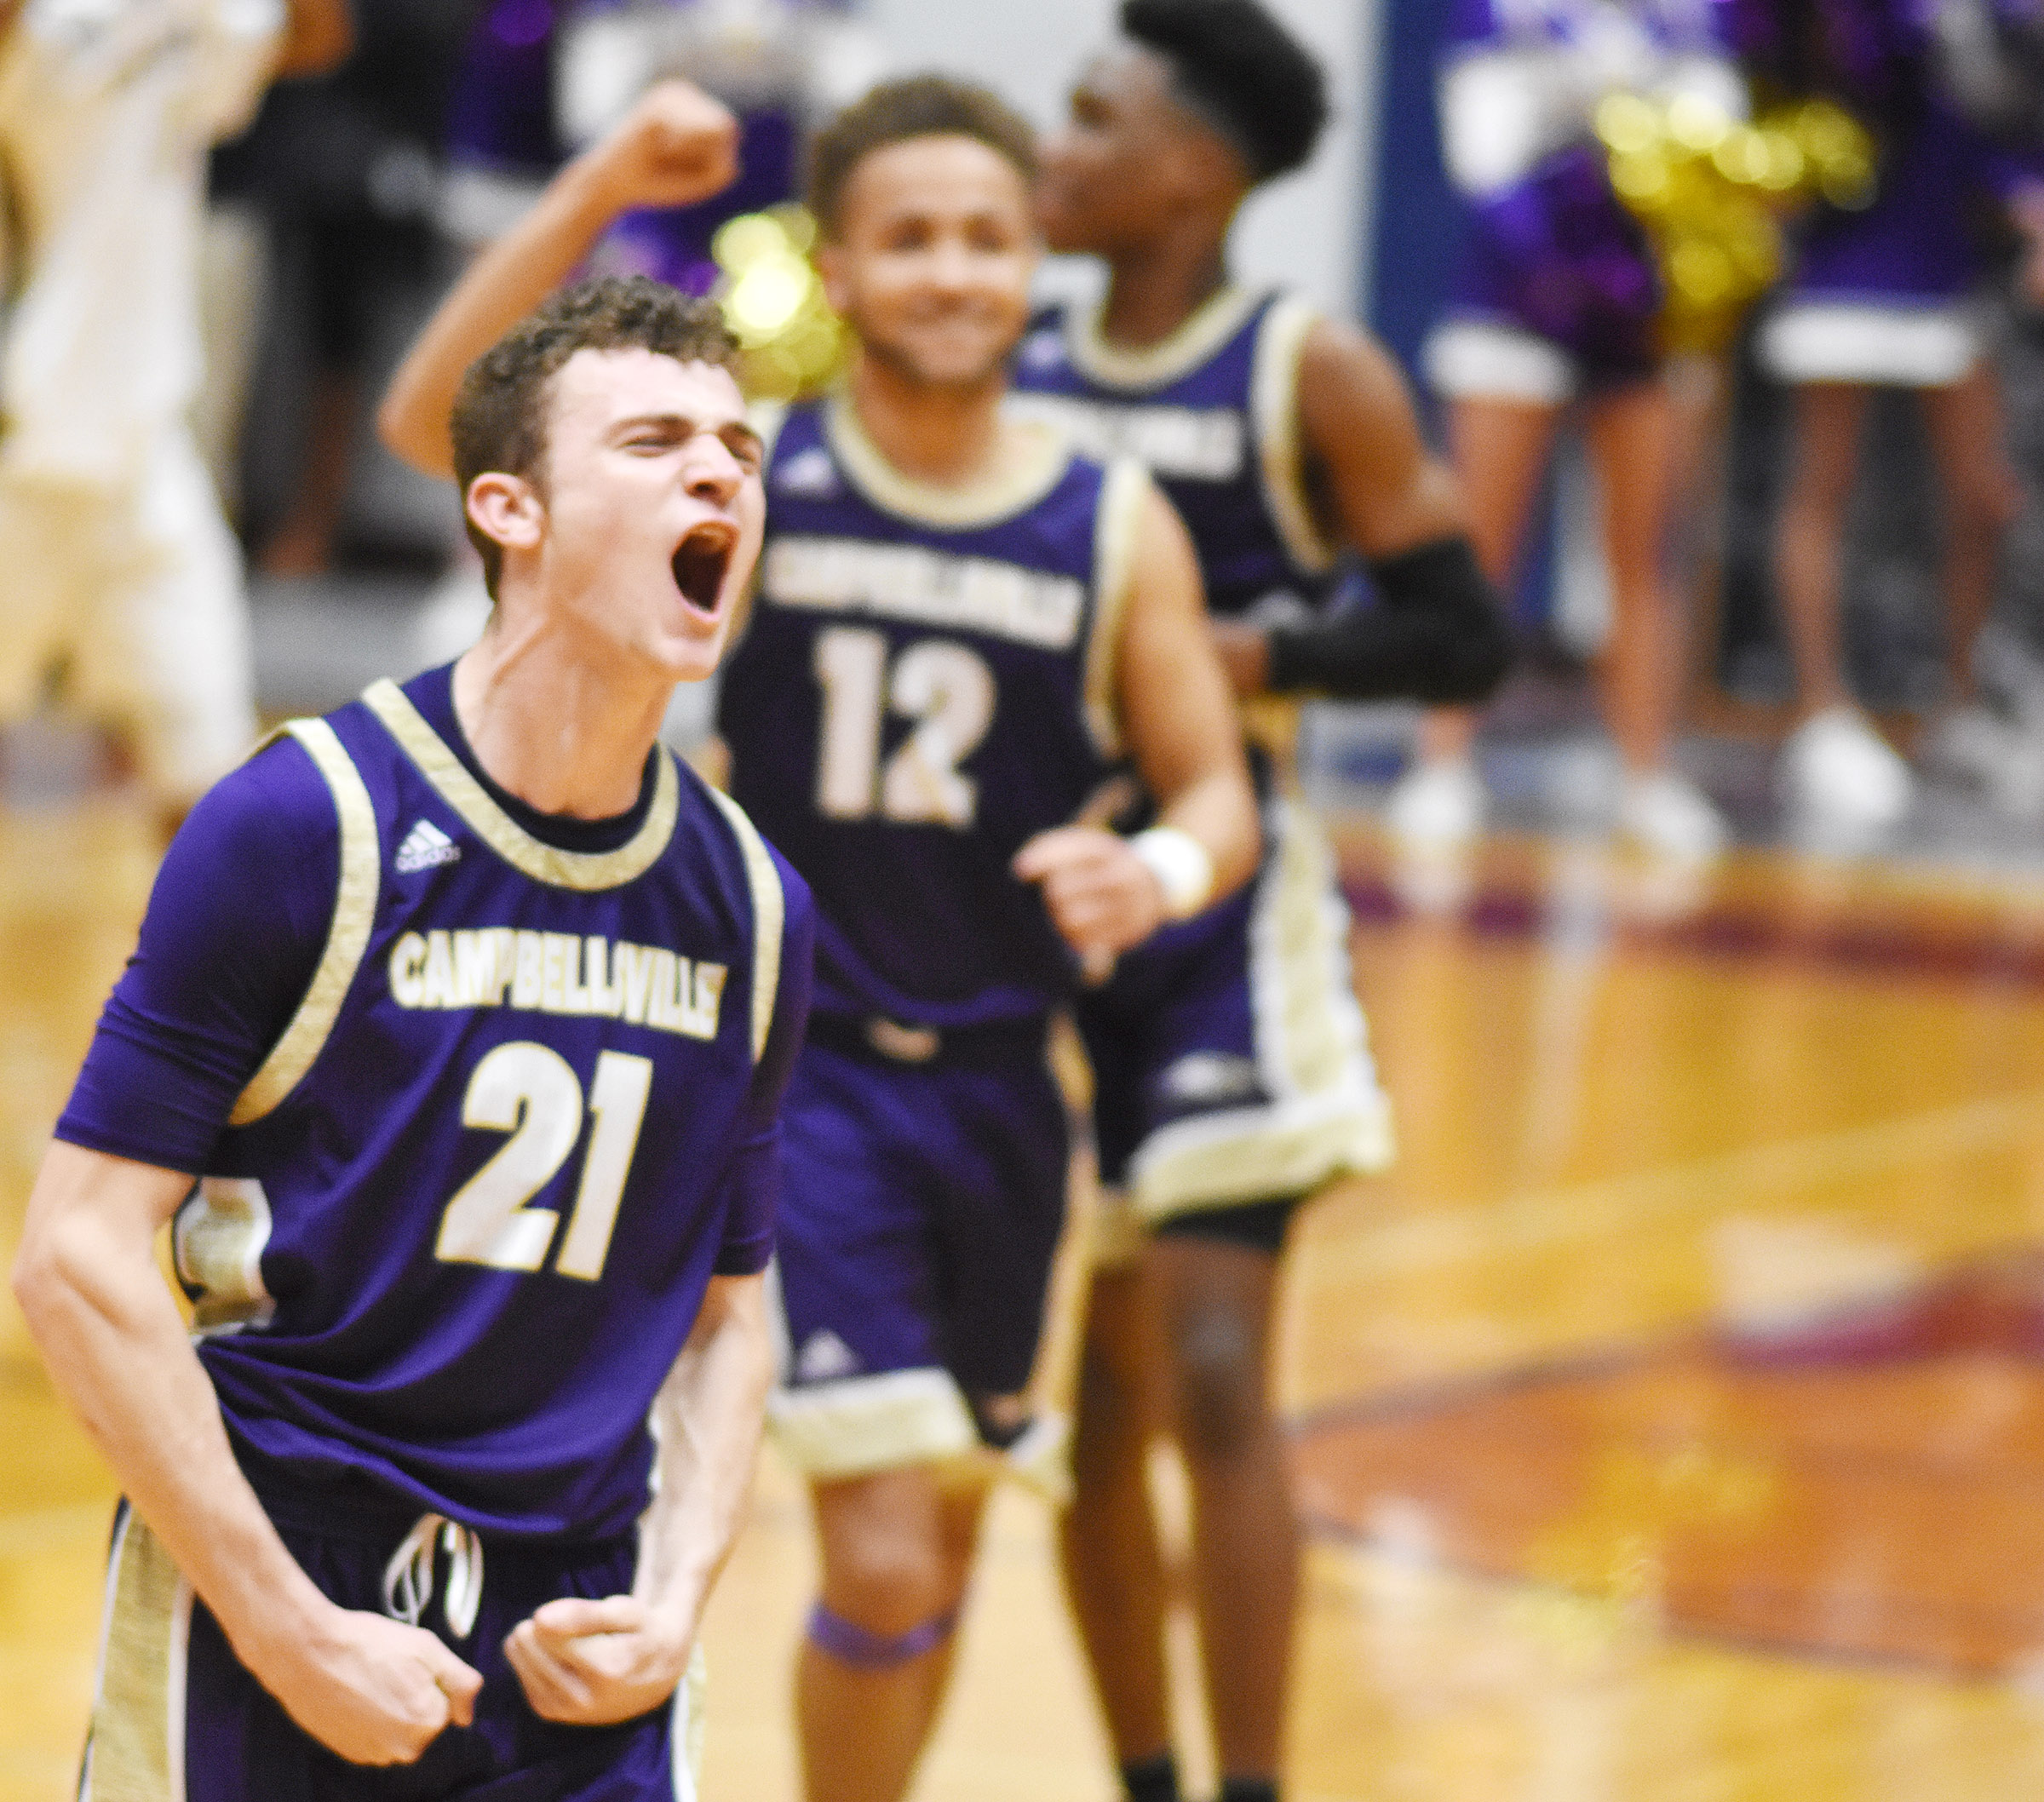 CHS senior Connor Wilson cheers as his team wins the game.